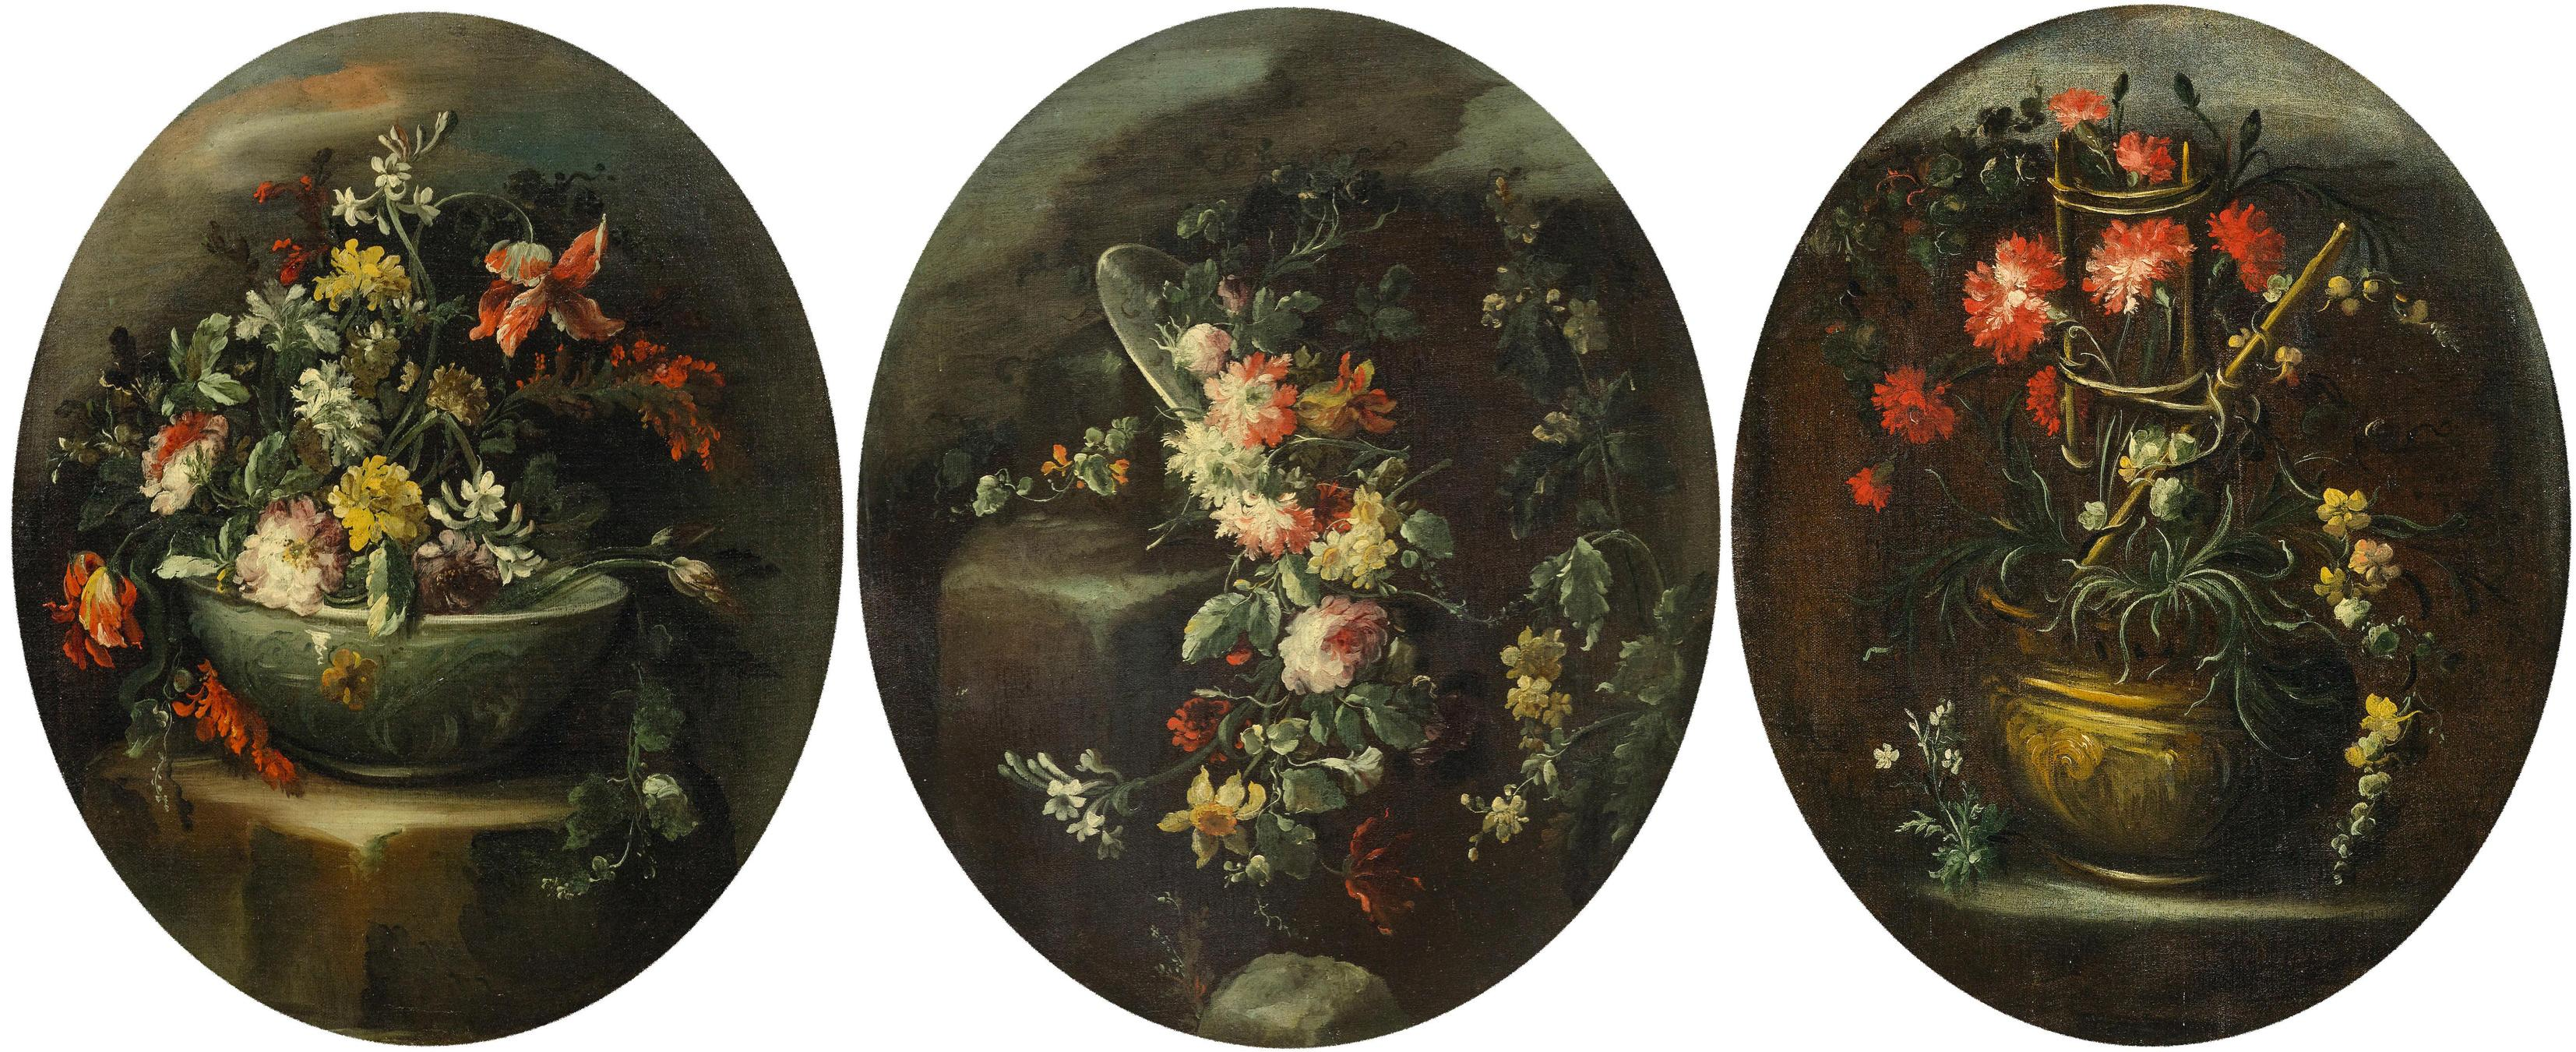 Still Lives Triptych - Oil on Canvas attr. to F. Guardi - Late 18th Century